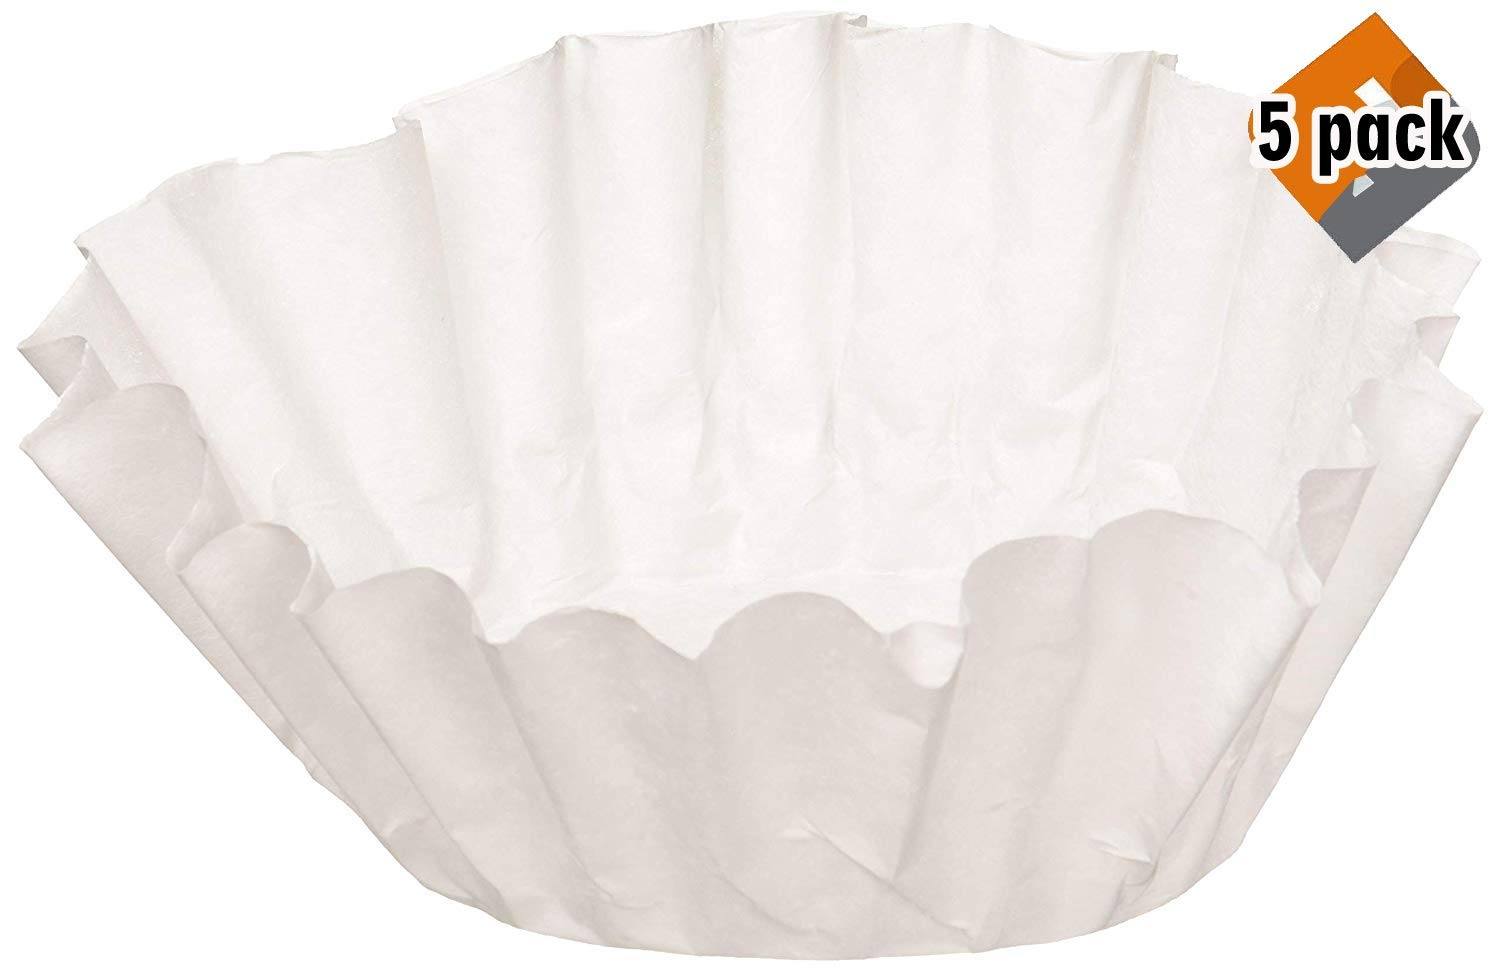 BUNN 6001 12-Cup Commercial Coffee Filters, 500-count, White, 5 Pack